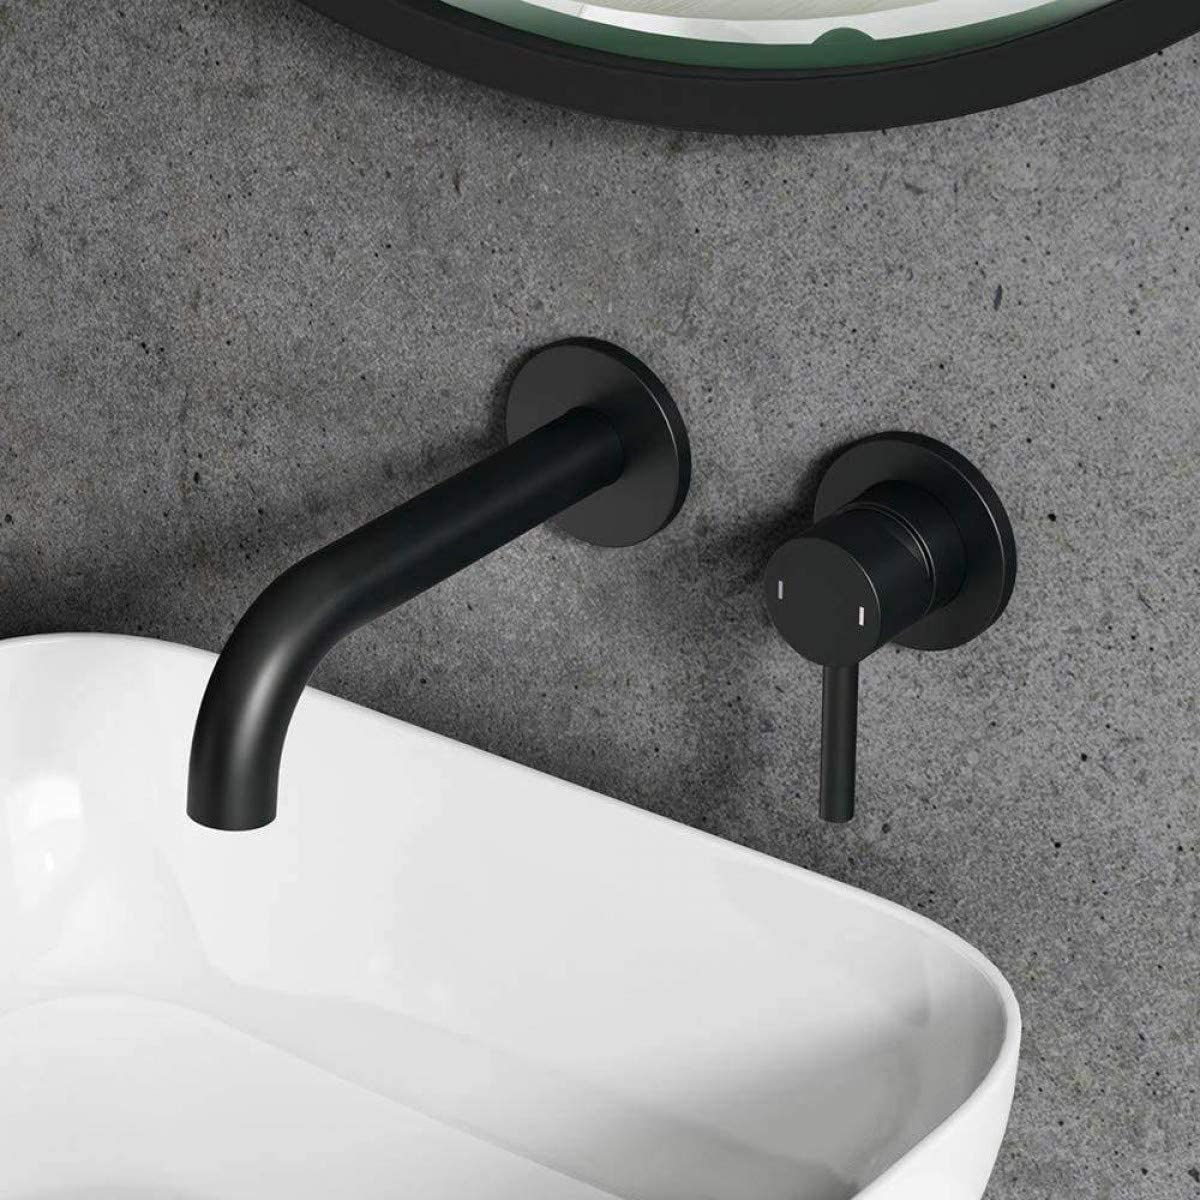 Matt Black Bathroom Brass Basin Hot and Cold Mixing Mixer Tap with Spout